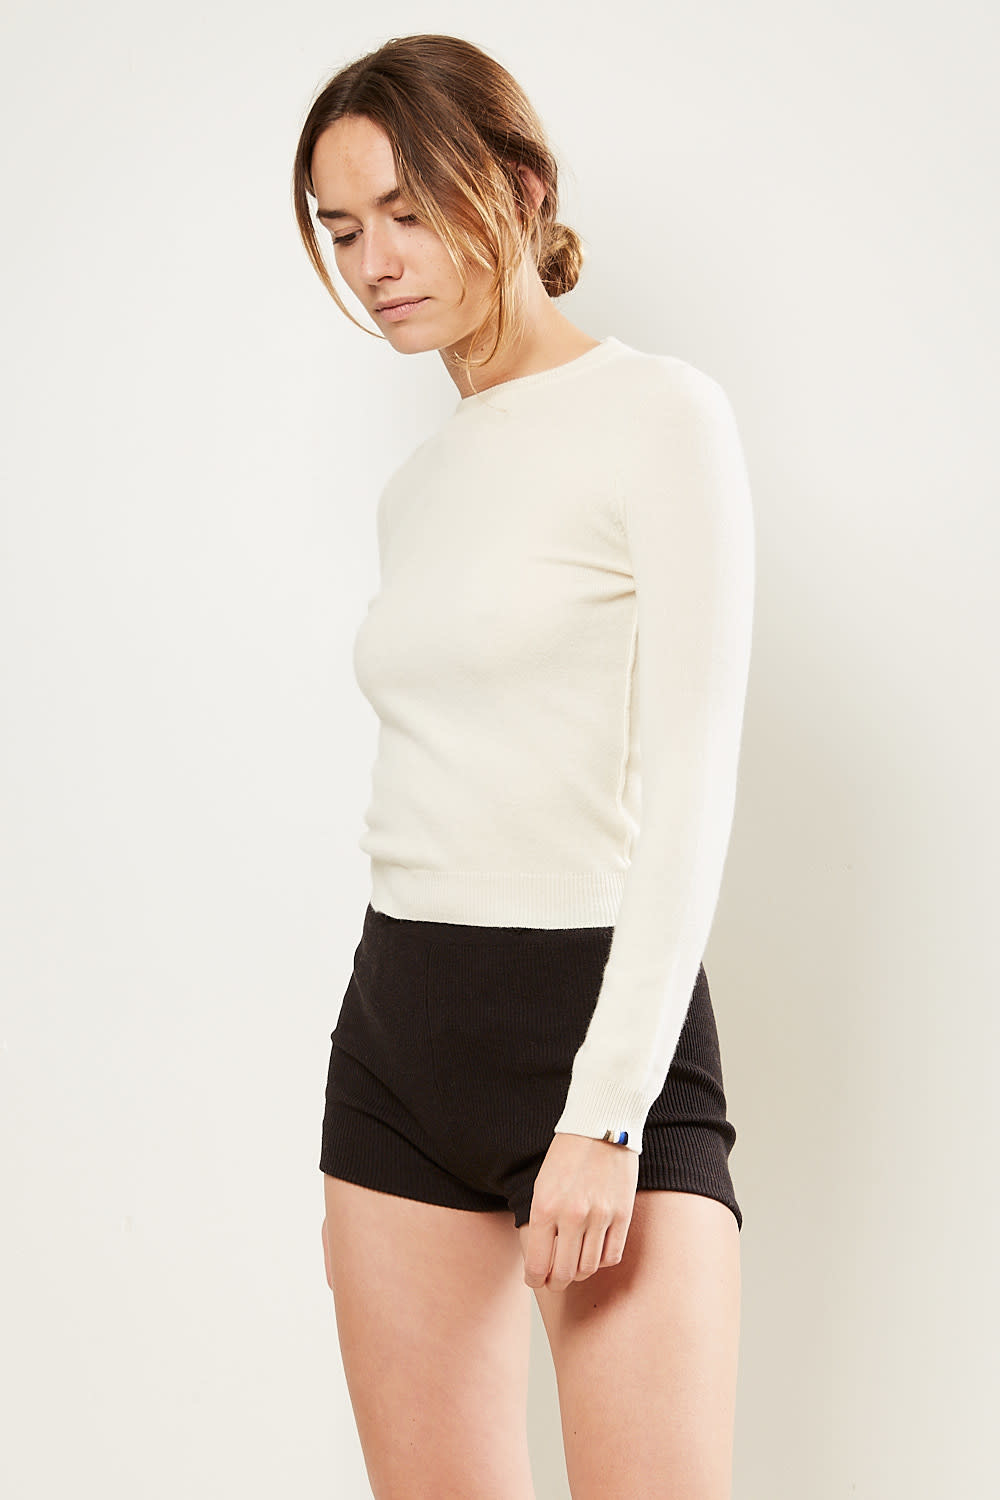 extreme cashmere - Nº89 kid extra small sweater